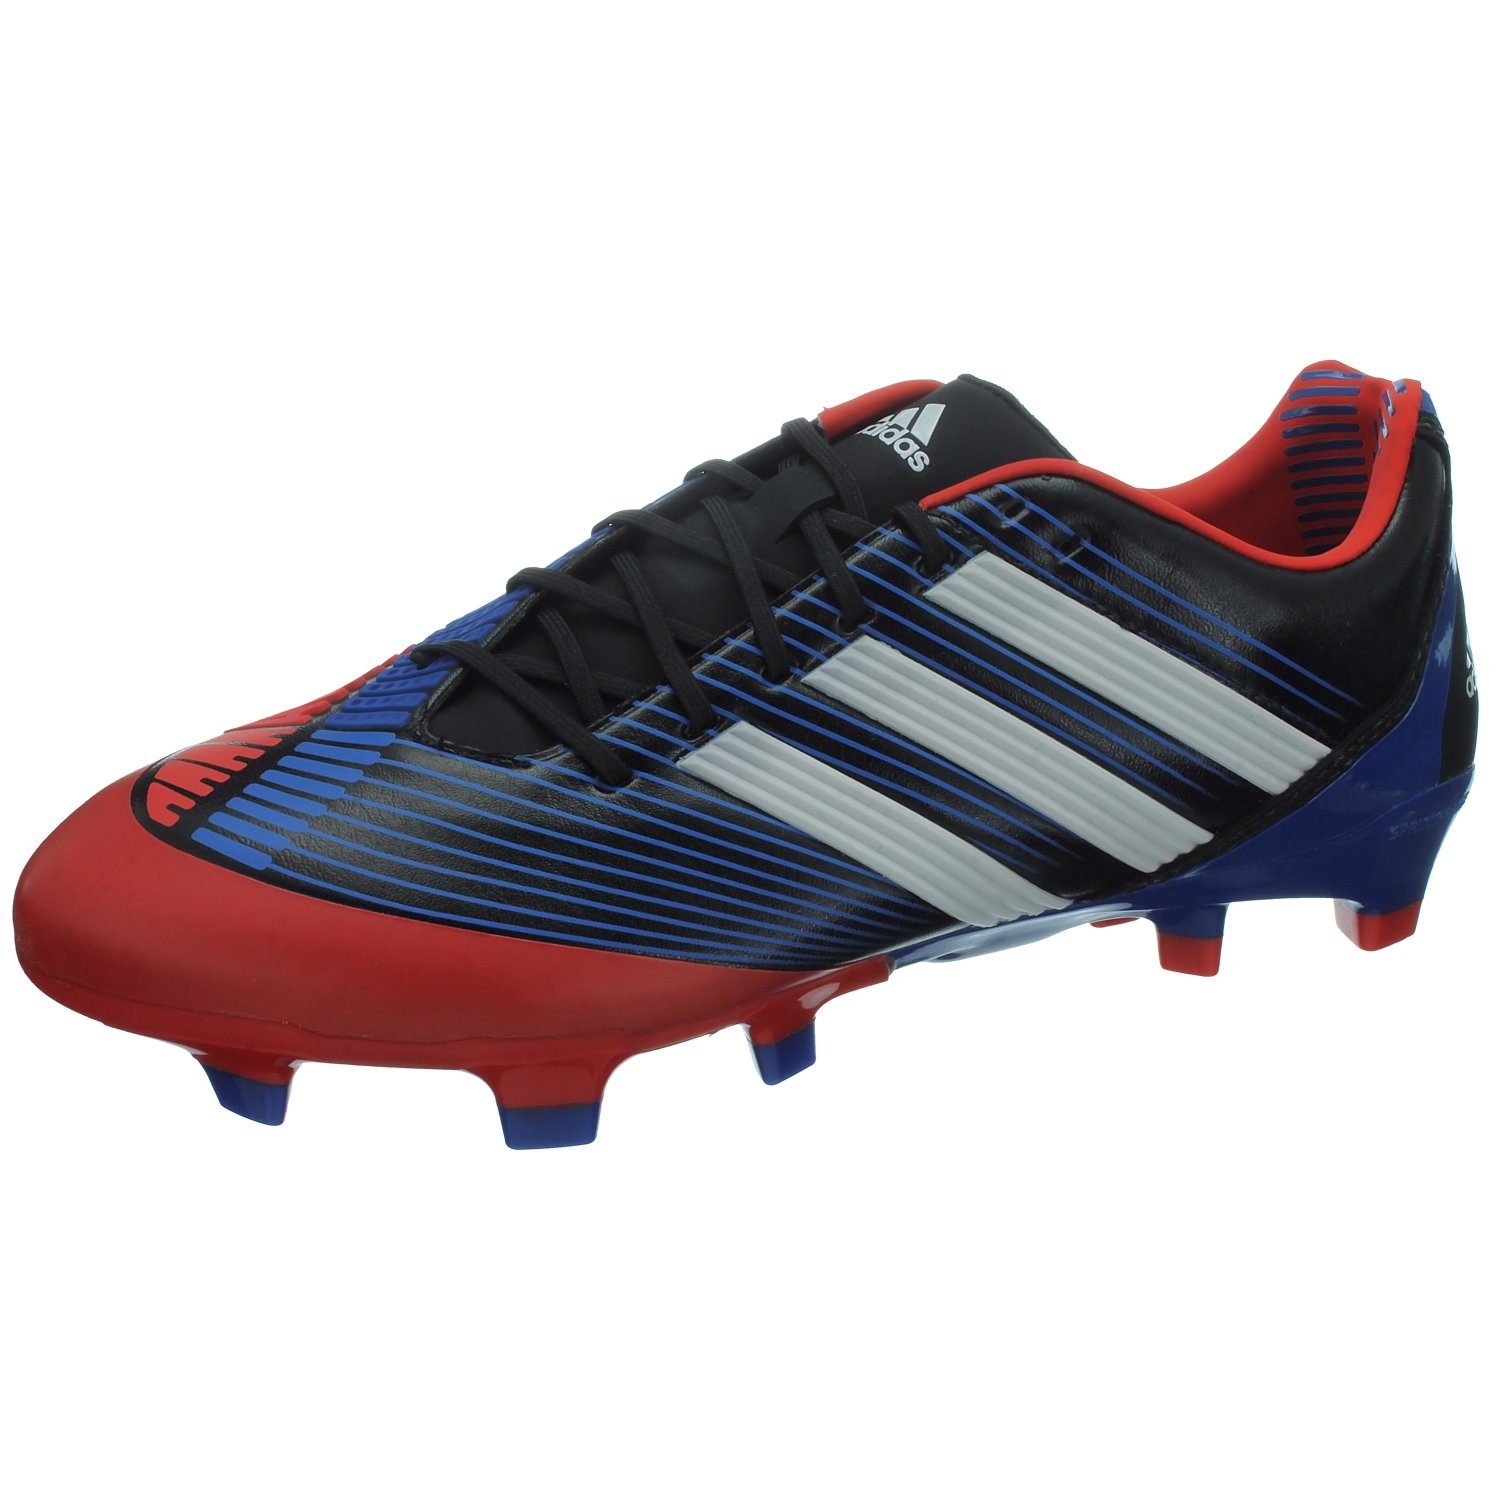 5a3a50583dde ... Shoes Adidas Predator Incurza Trx Fg Ii Amazon.co.uk Sports Outdo ...